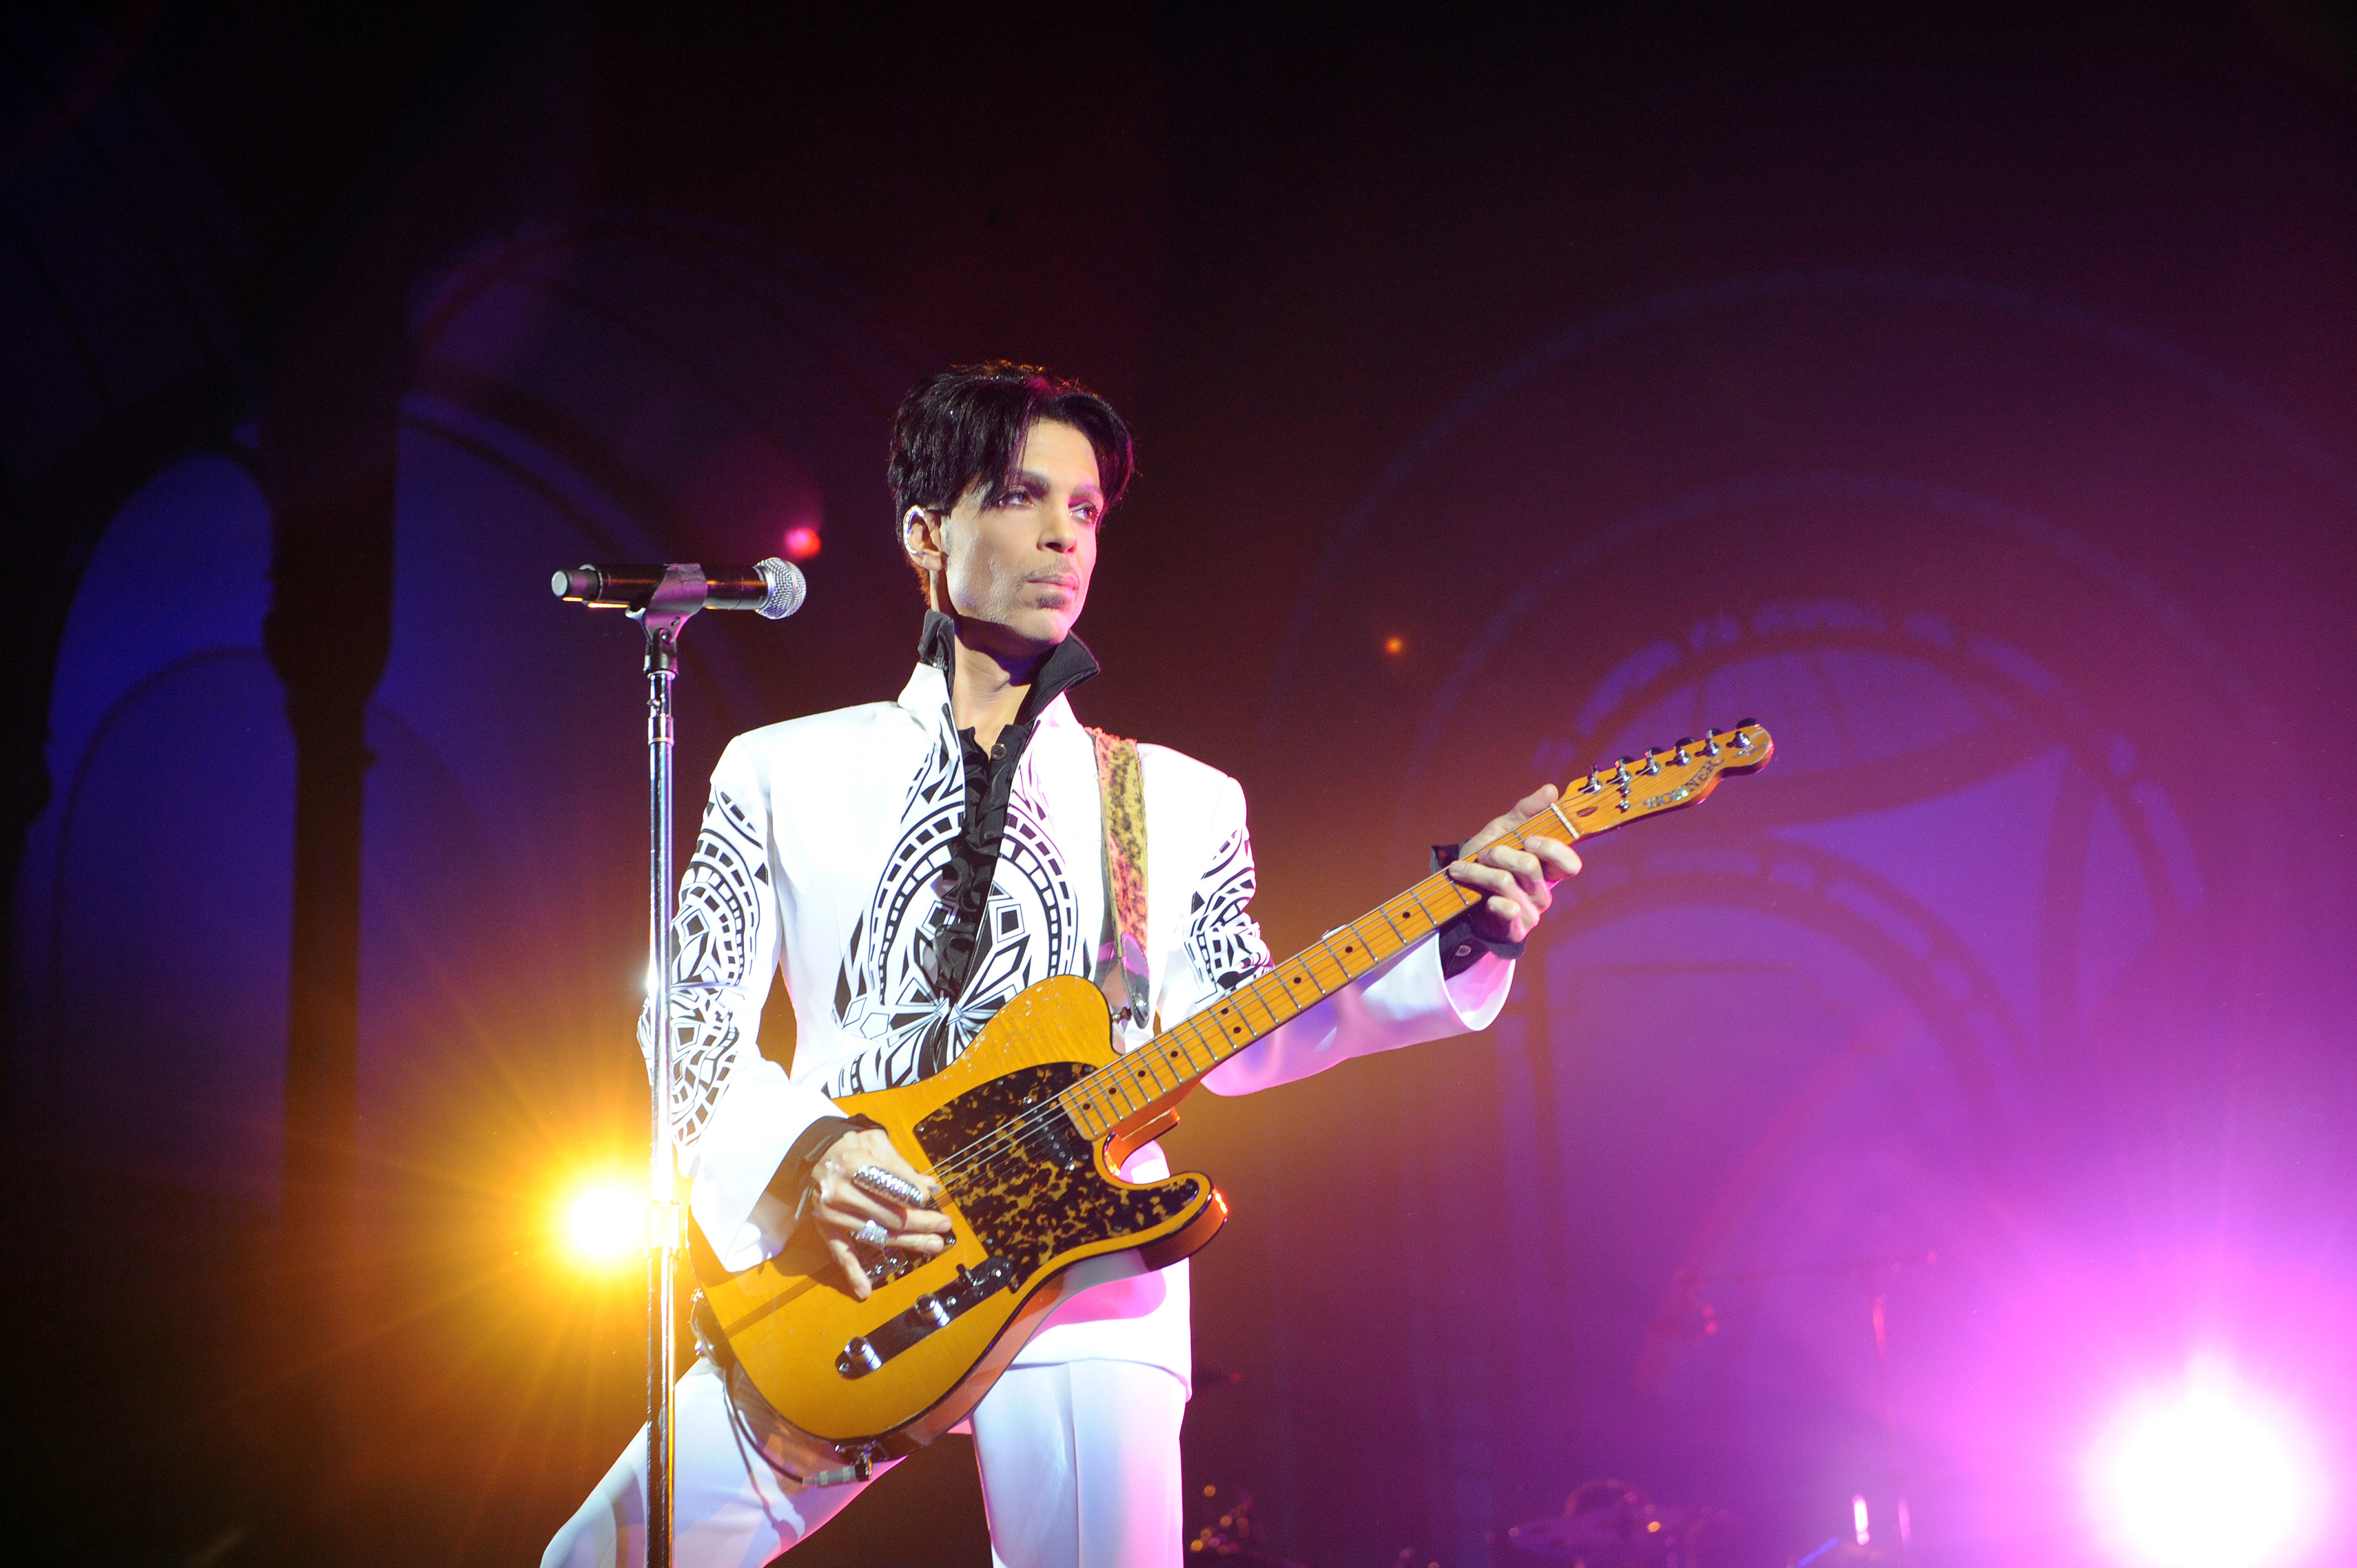 Prince Reportedly Treated for Drug Overdose Just Days Before Death